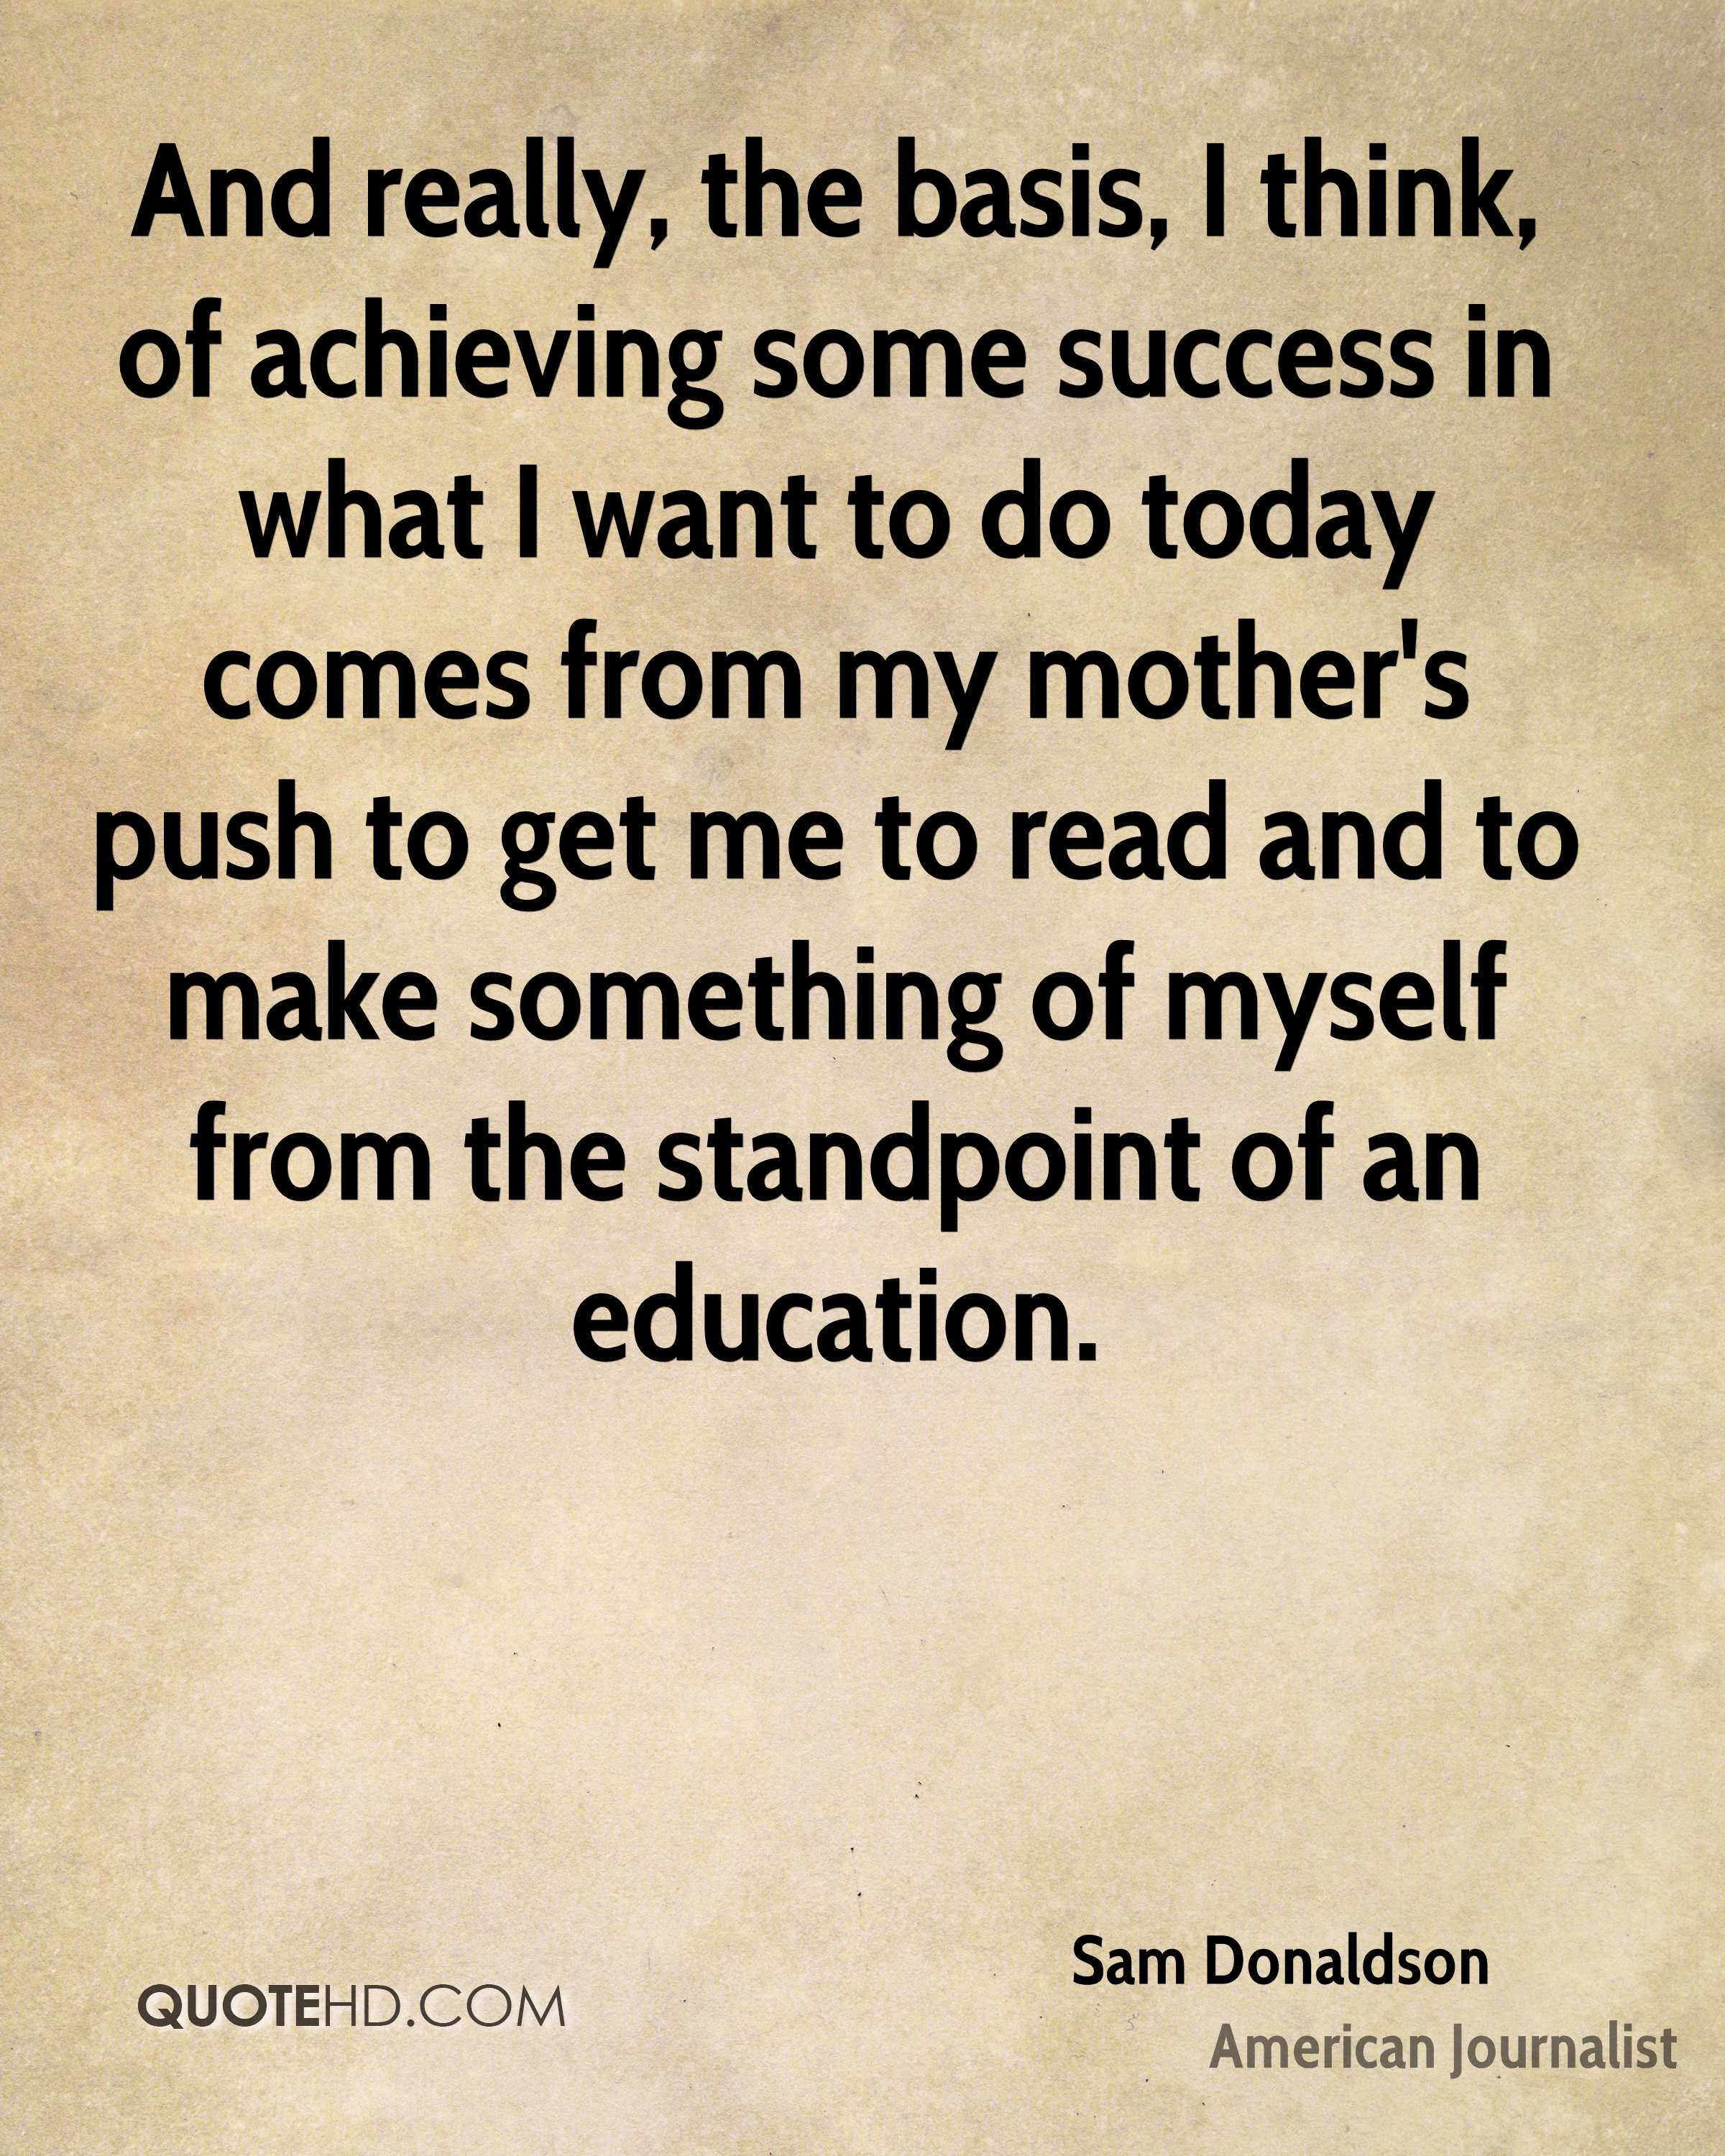 And really, the basis, I think, of achieving some success in what I want to do today comes from my mother's push to get me to read and to make something of myself from the standpoint of an education.